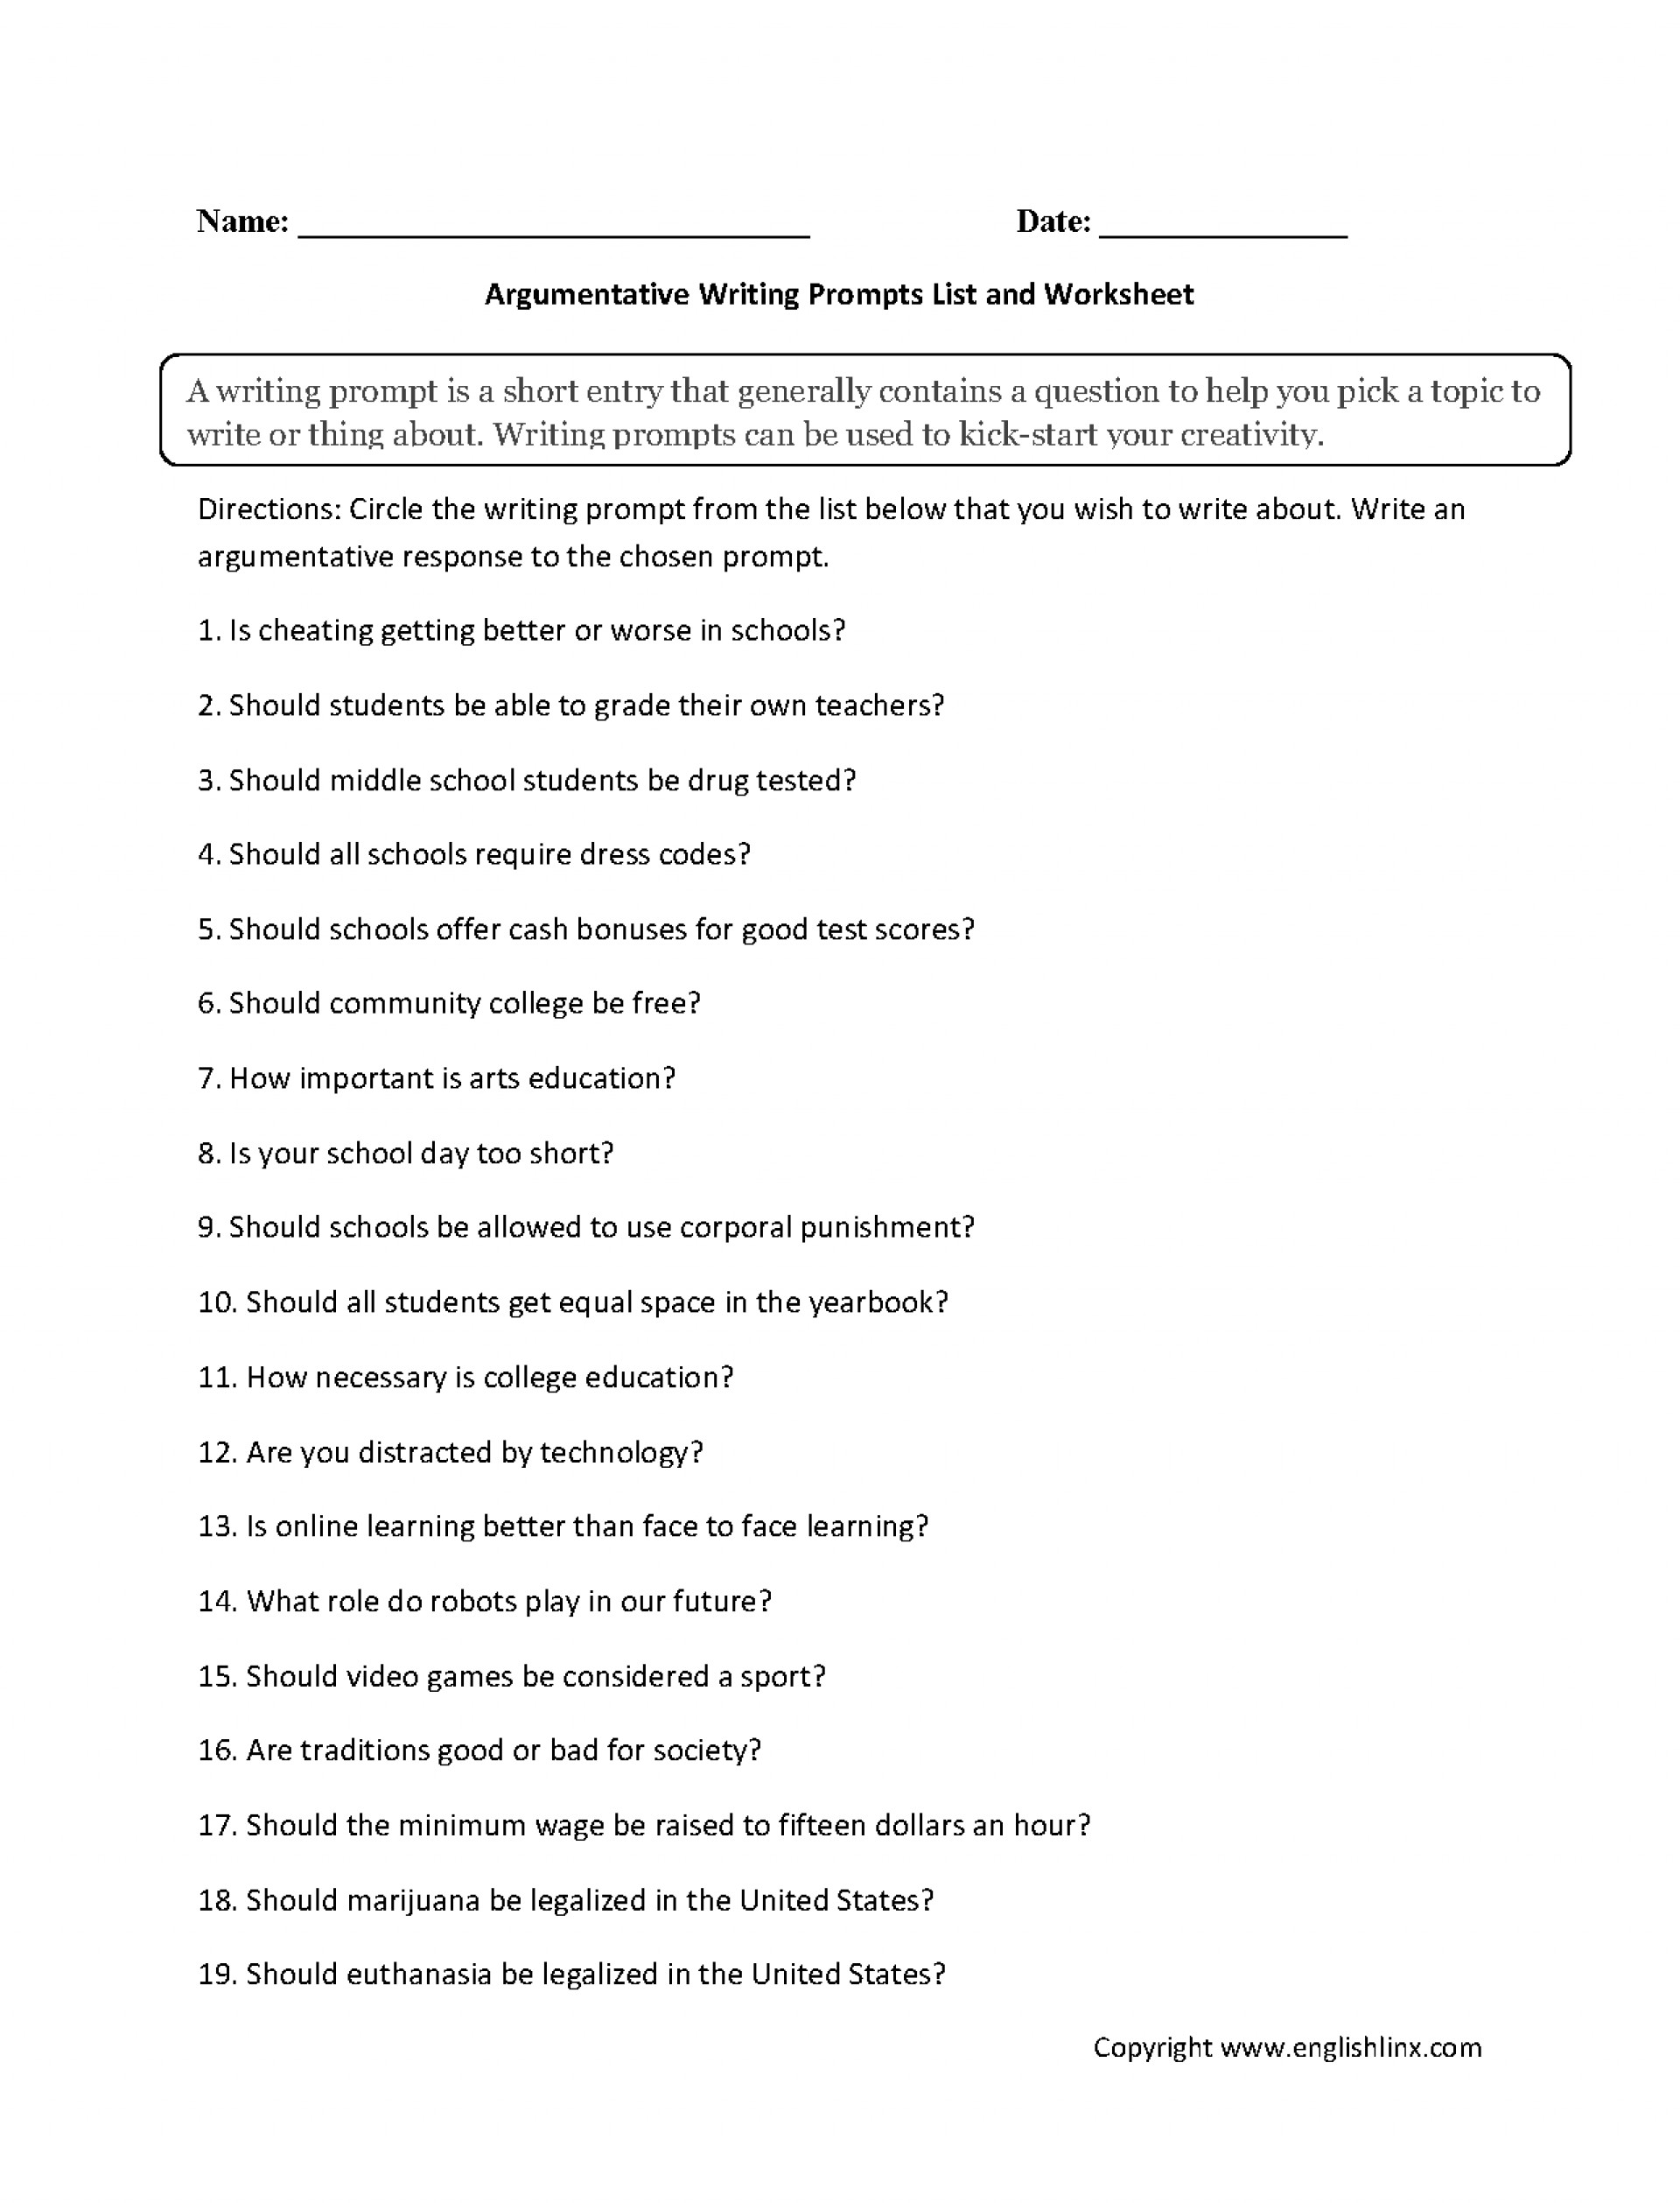 004 Essay Example Argumentative Writing Prompts List Worksheet Amazing Topic Funny Topics For College Students Secondary School Controversial Music 1920